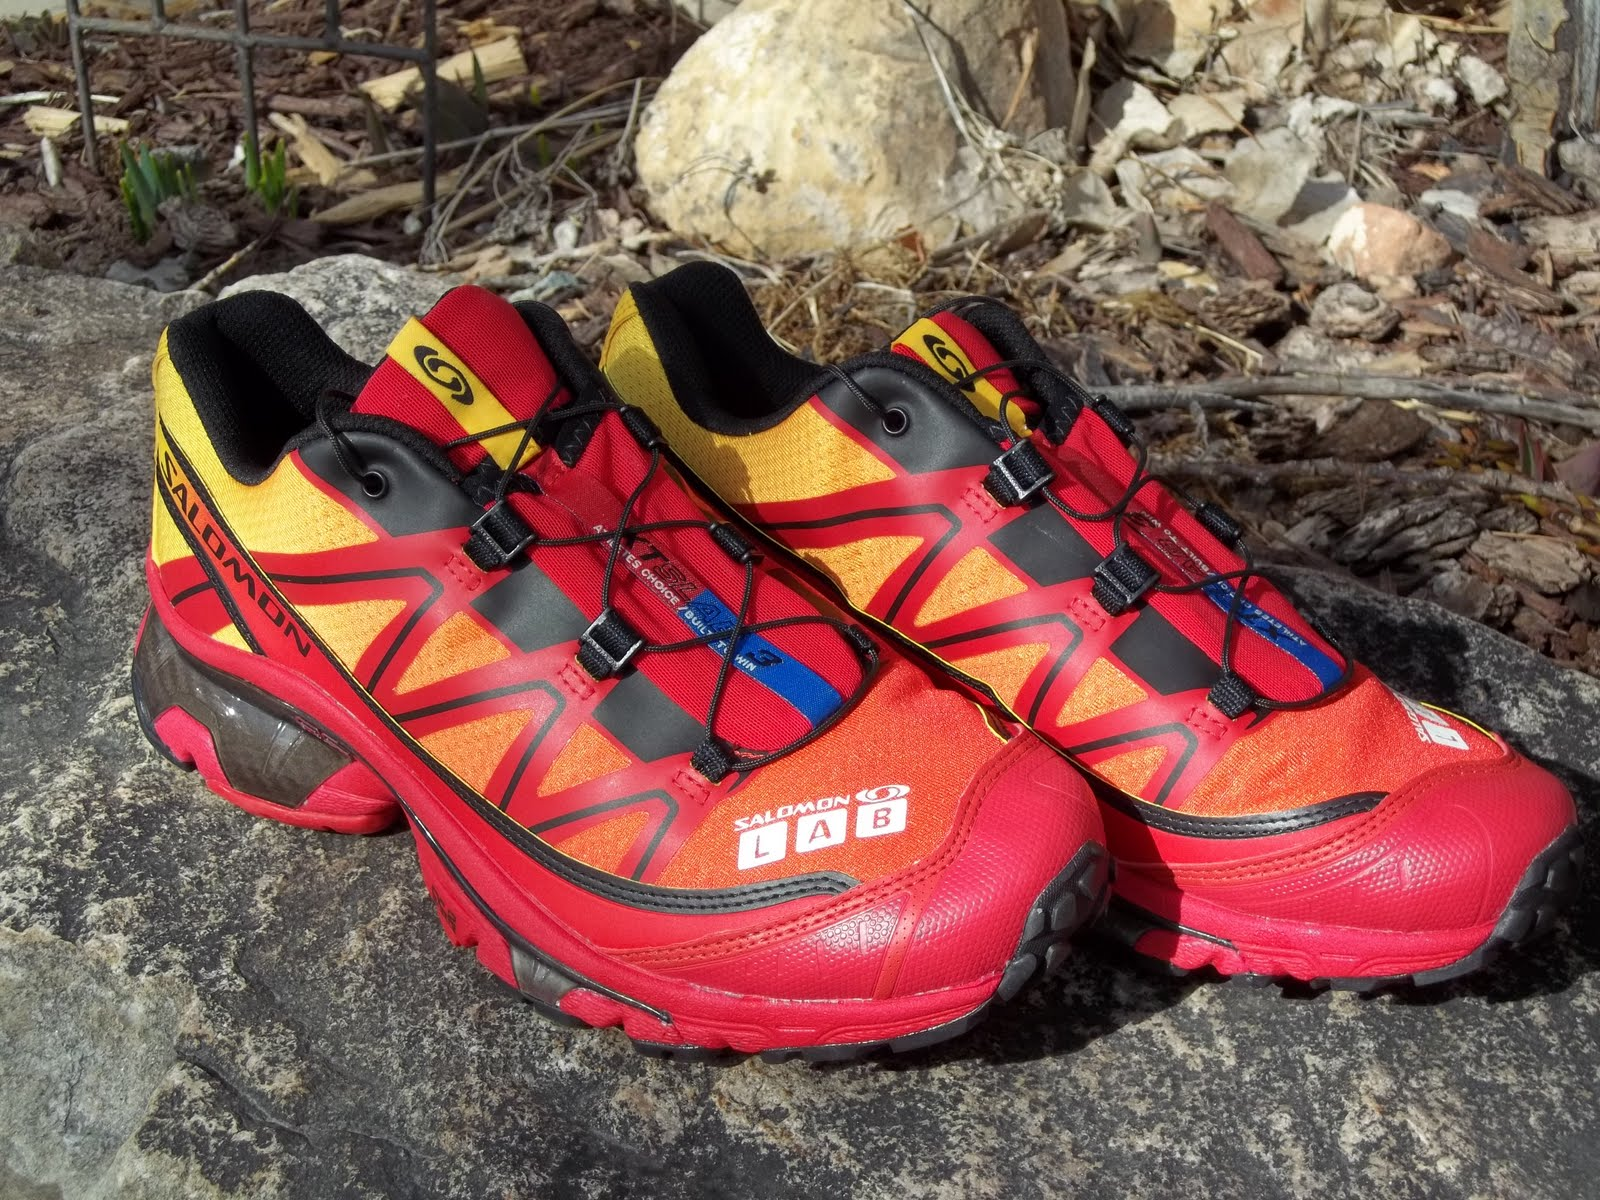 free shipping 1af27 72763 Salomon S-LAB 3 XT Wings Review